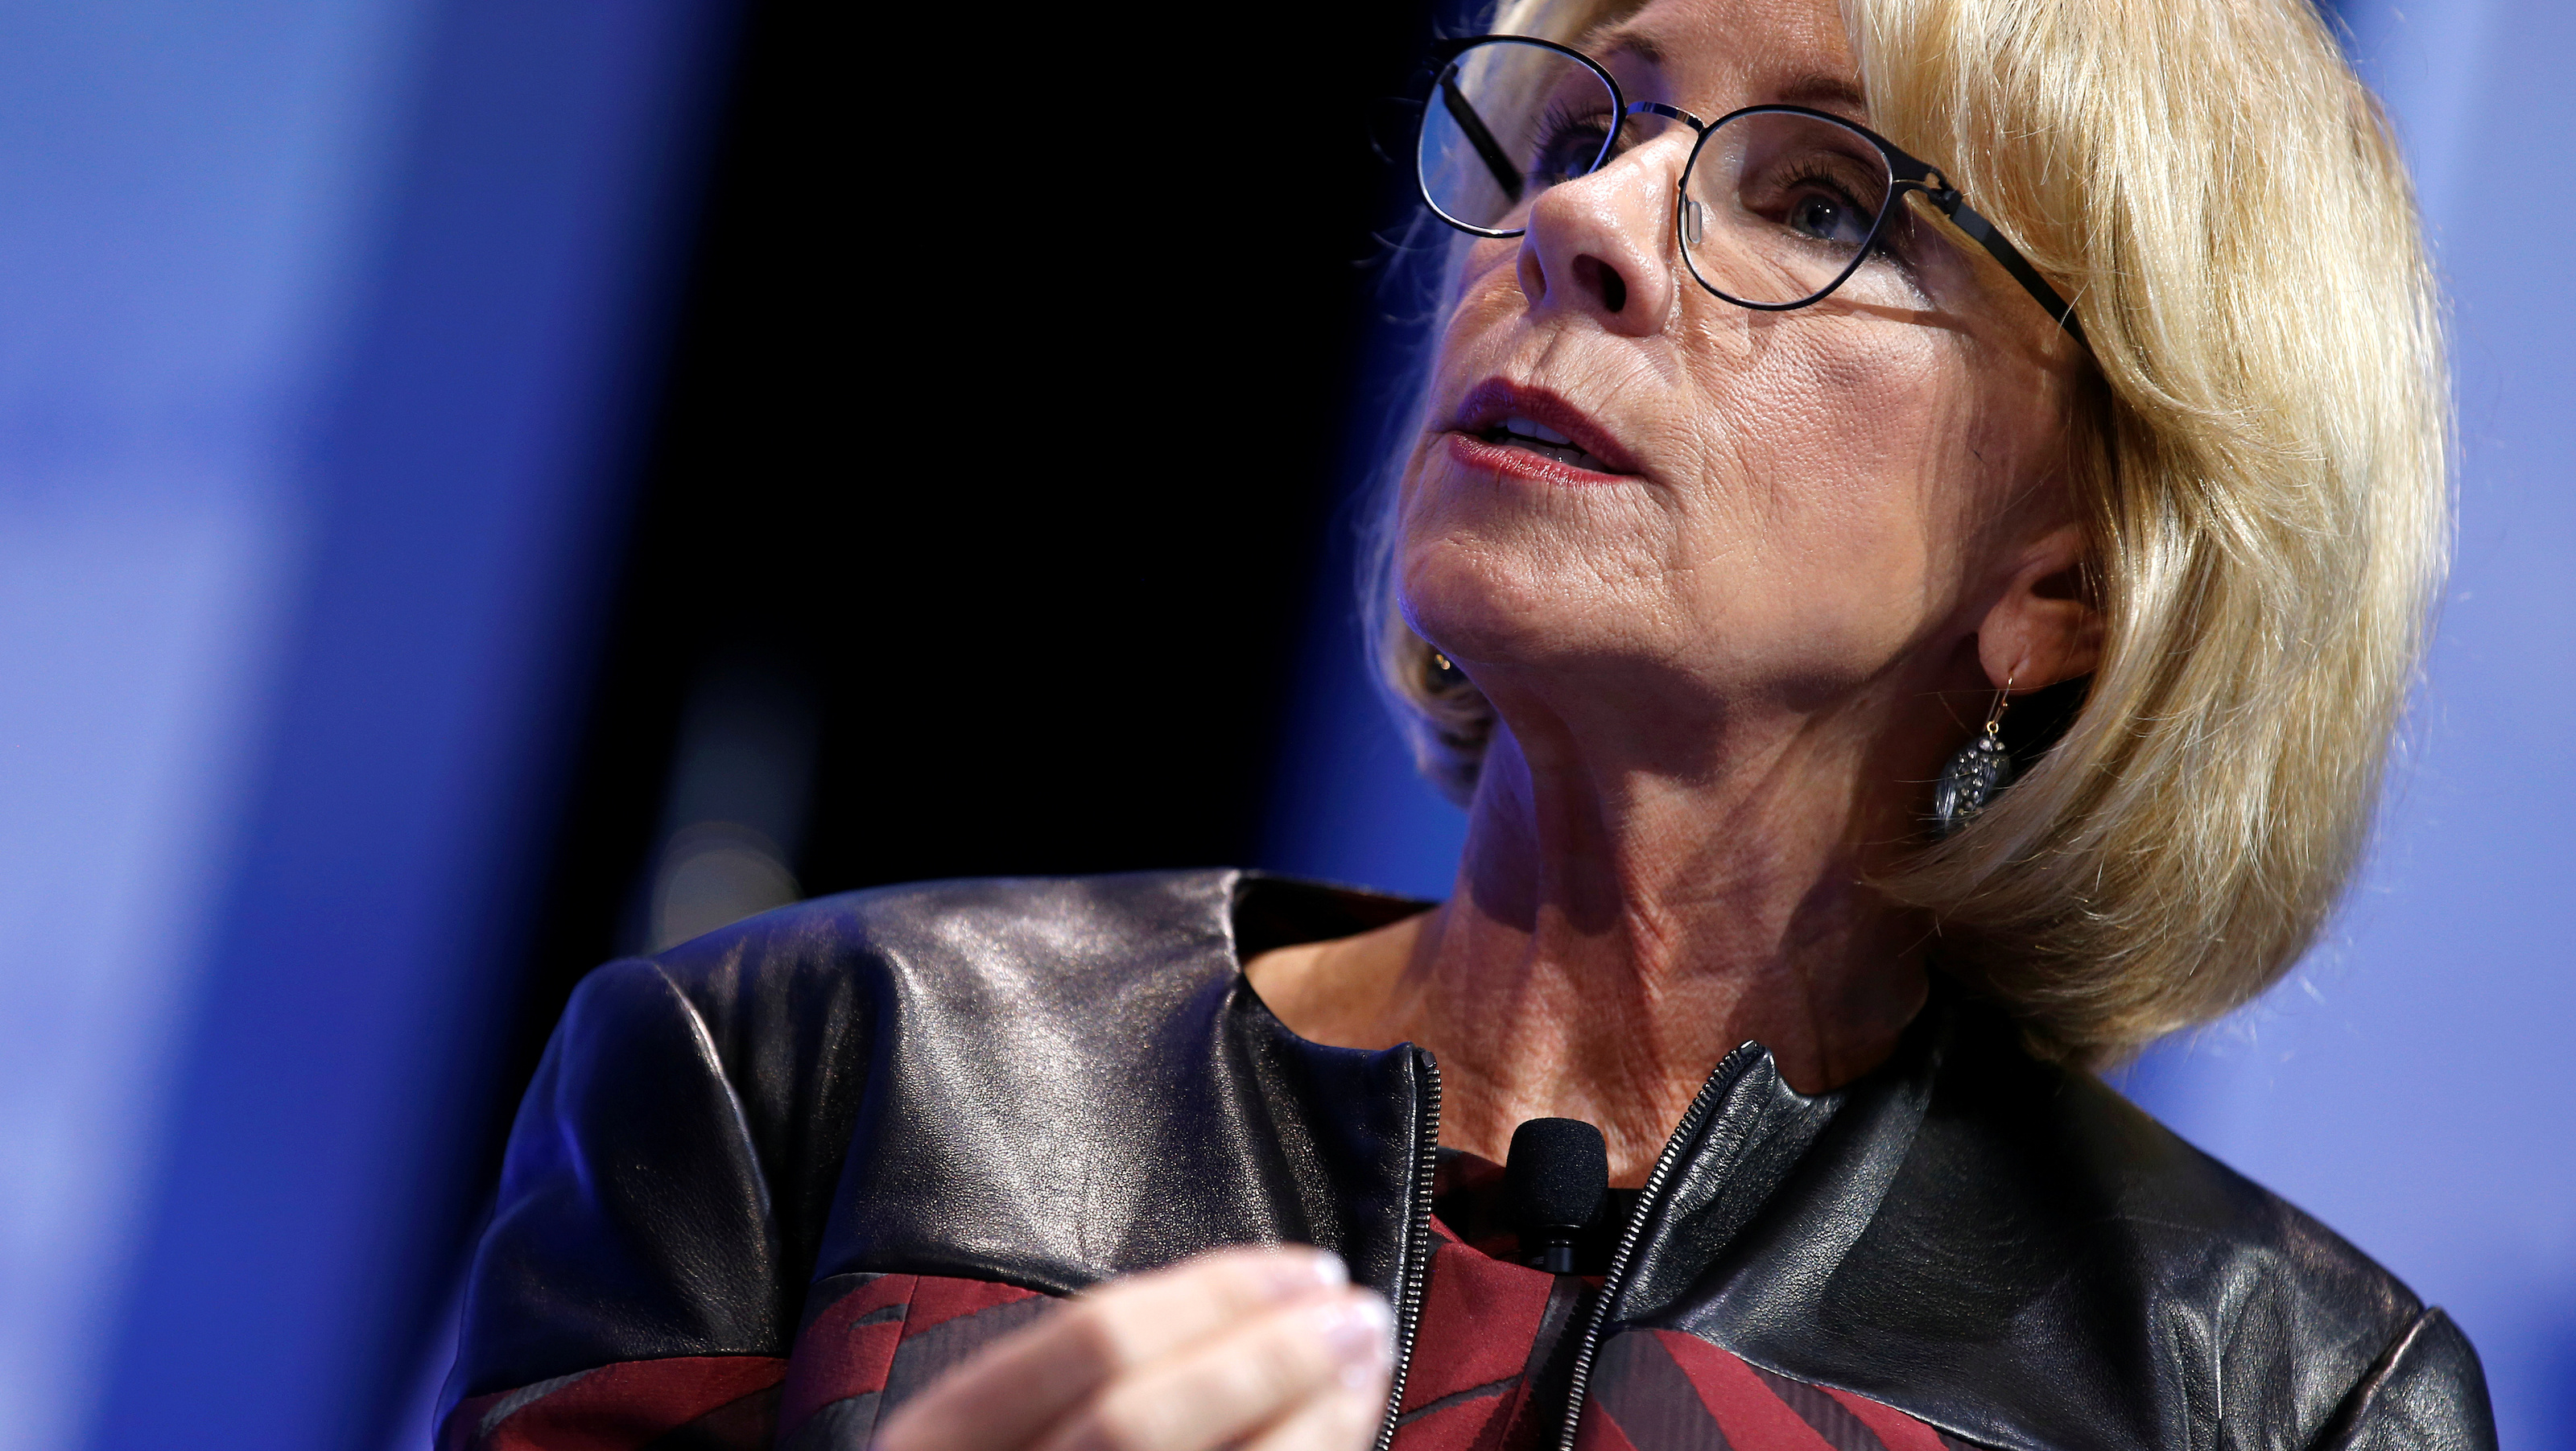 U.S. Secretary of Education Betsy DeVos speaks at the Conservative Political Action Conference (CPAC) in National Harbor, Maryland, U.S., February 23, 2017.      REUTERS/Joshua Roberts - RTS101RZ